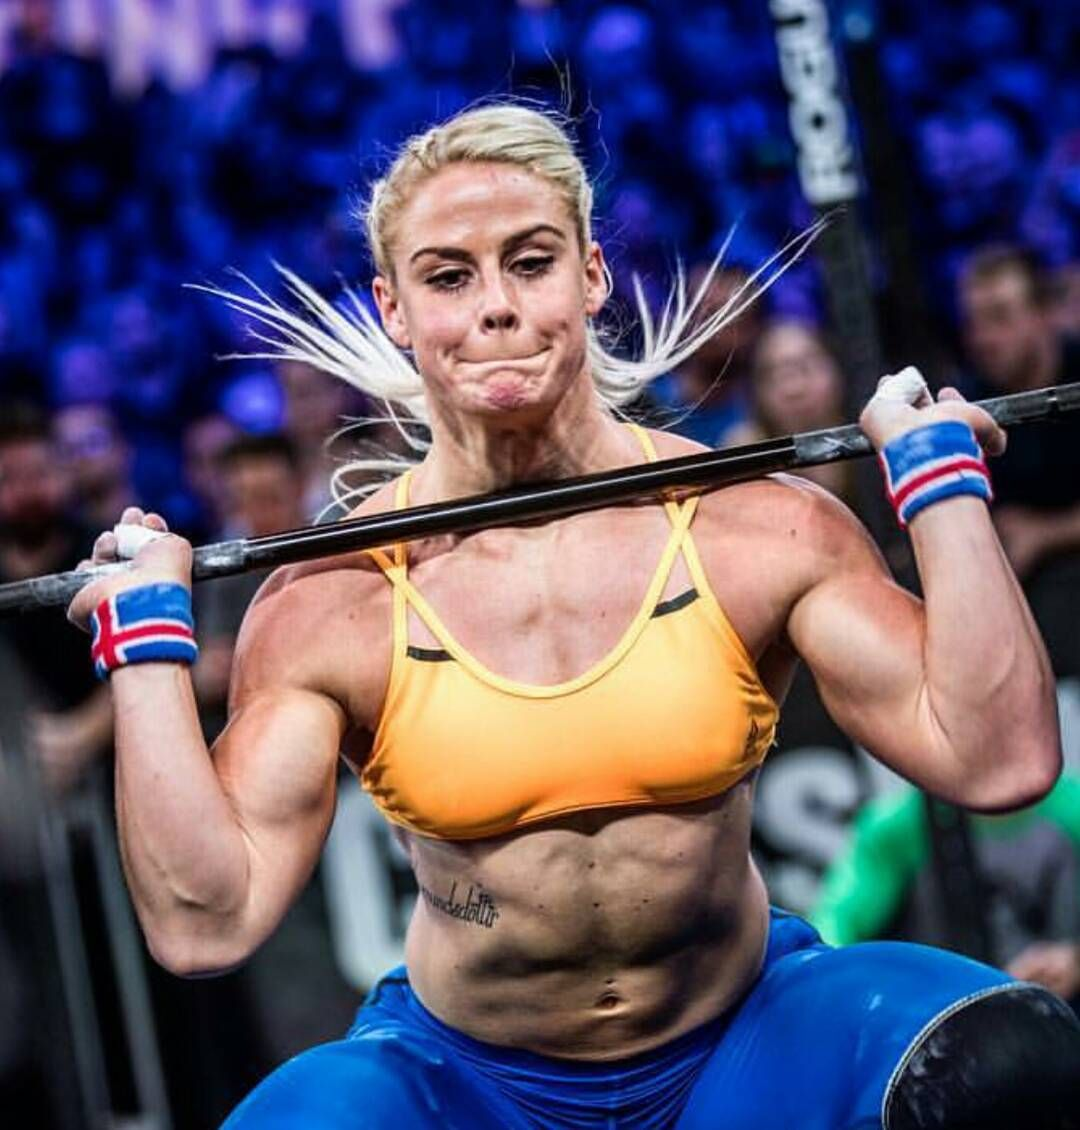 Women S Crossfit Workouts: Pin By A. Anderson On Body Building And Crossfit